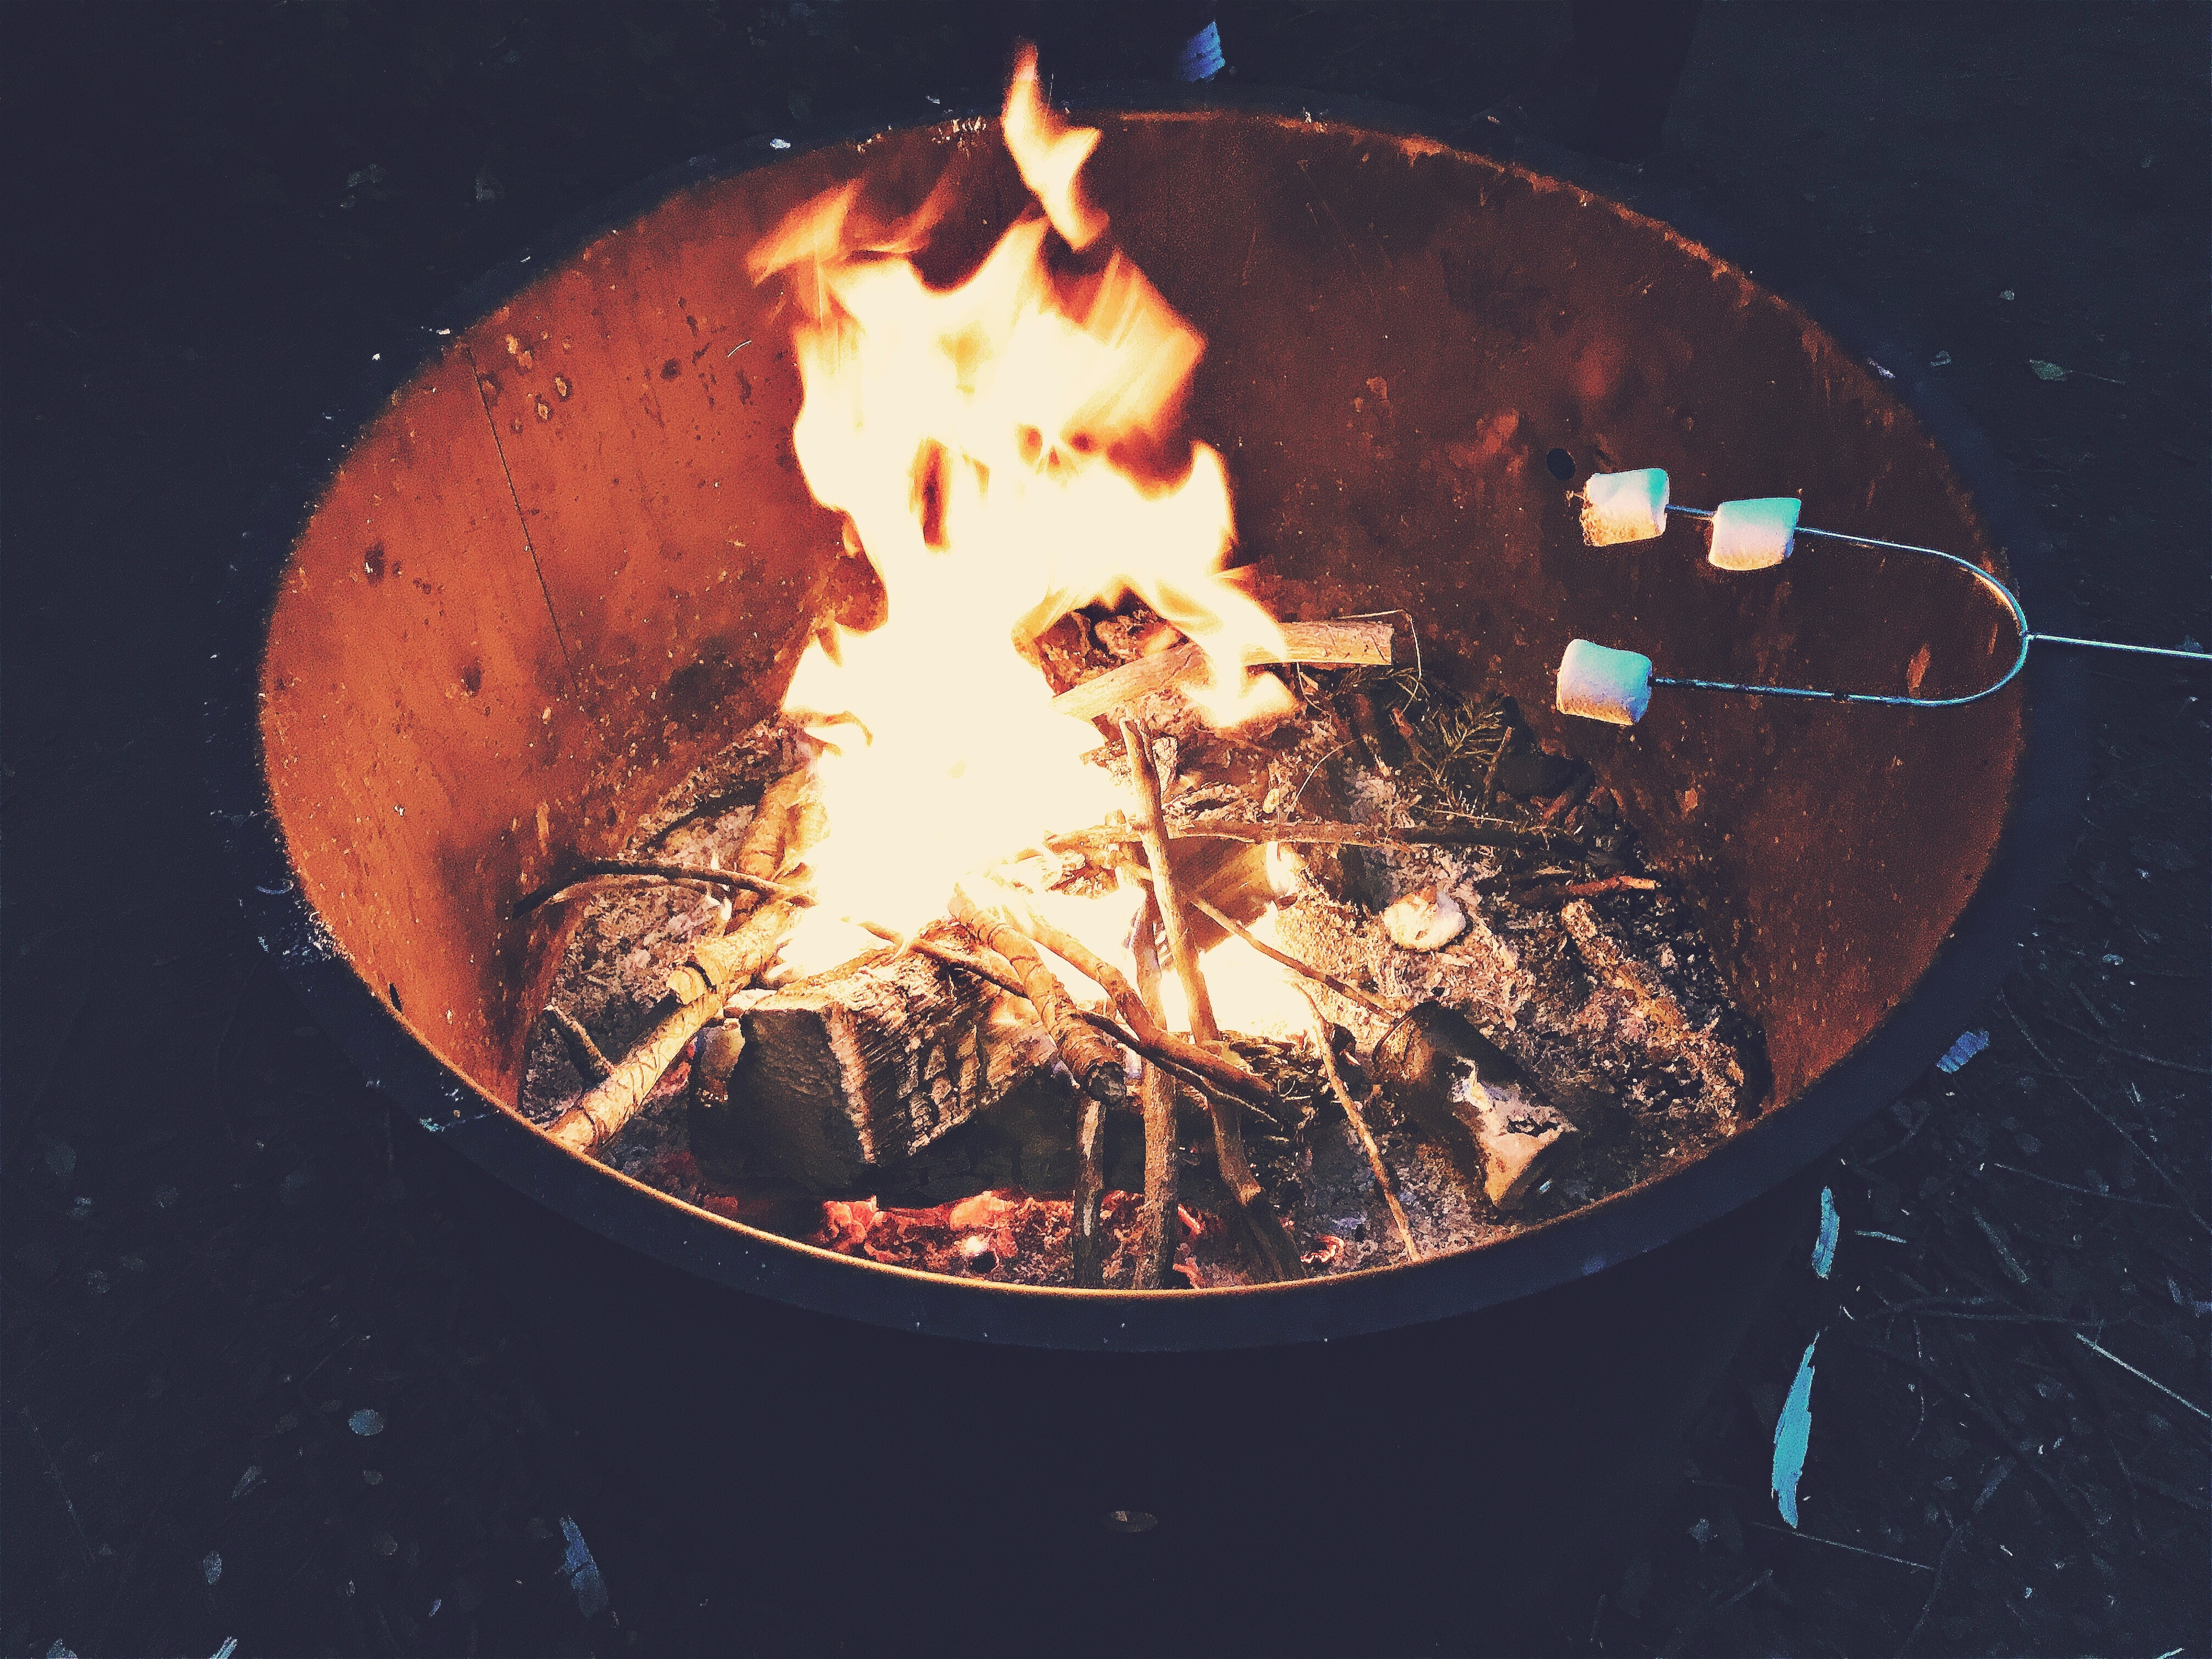 Smores on the fire